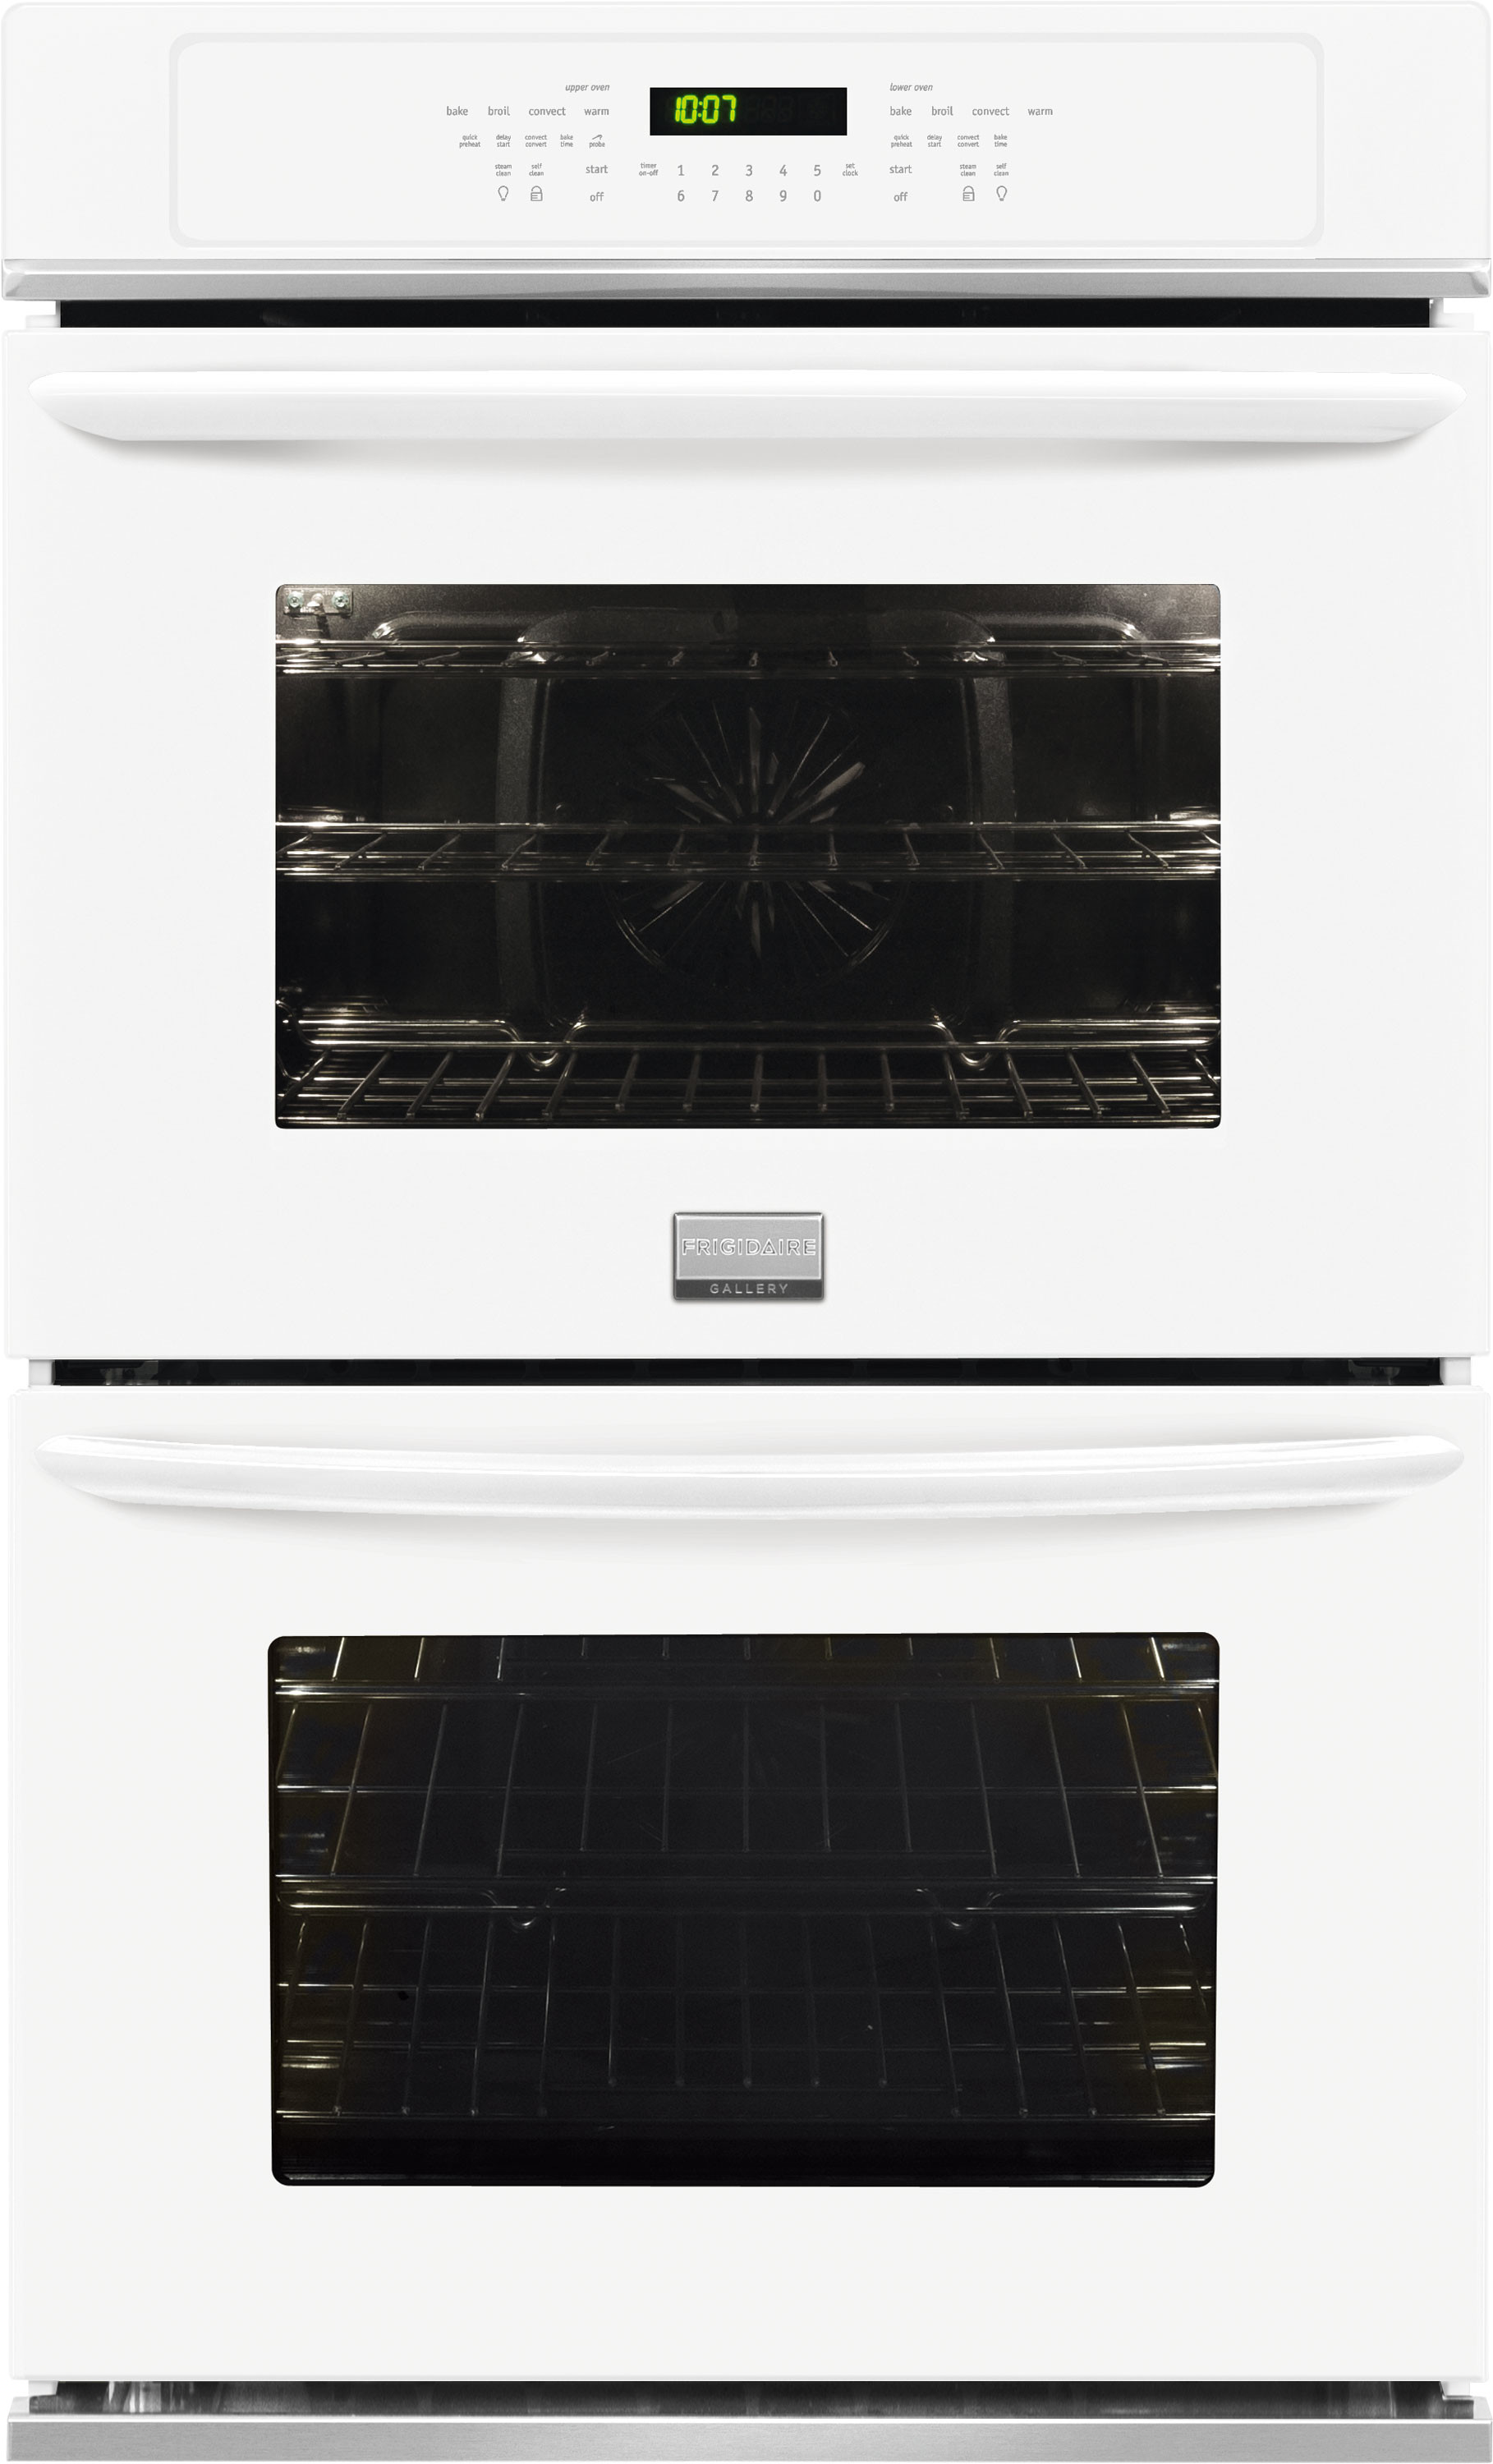 Electric Wall Oven 24 Inch Double Wall Ovens Double Ovens